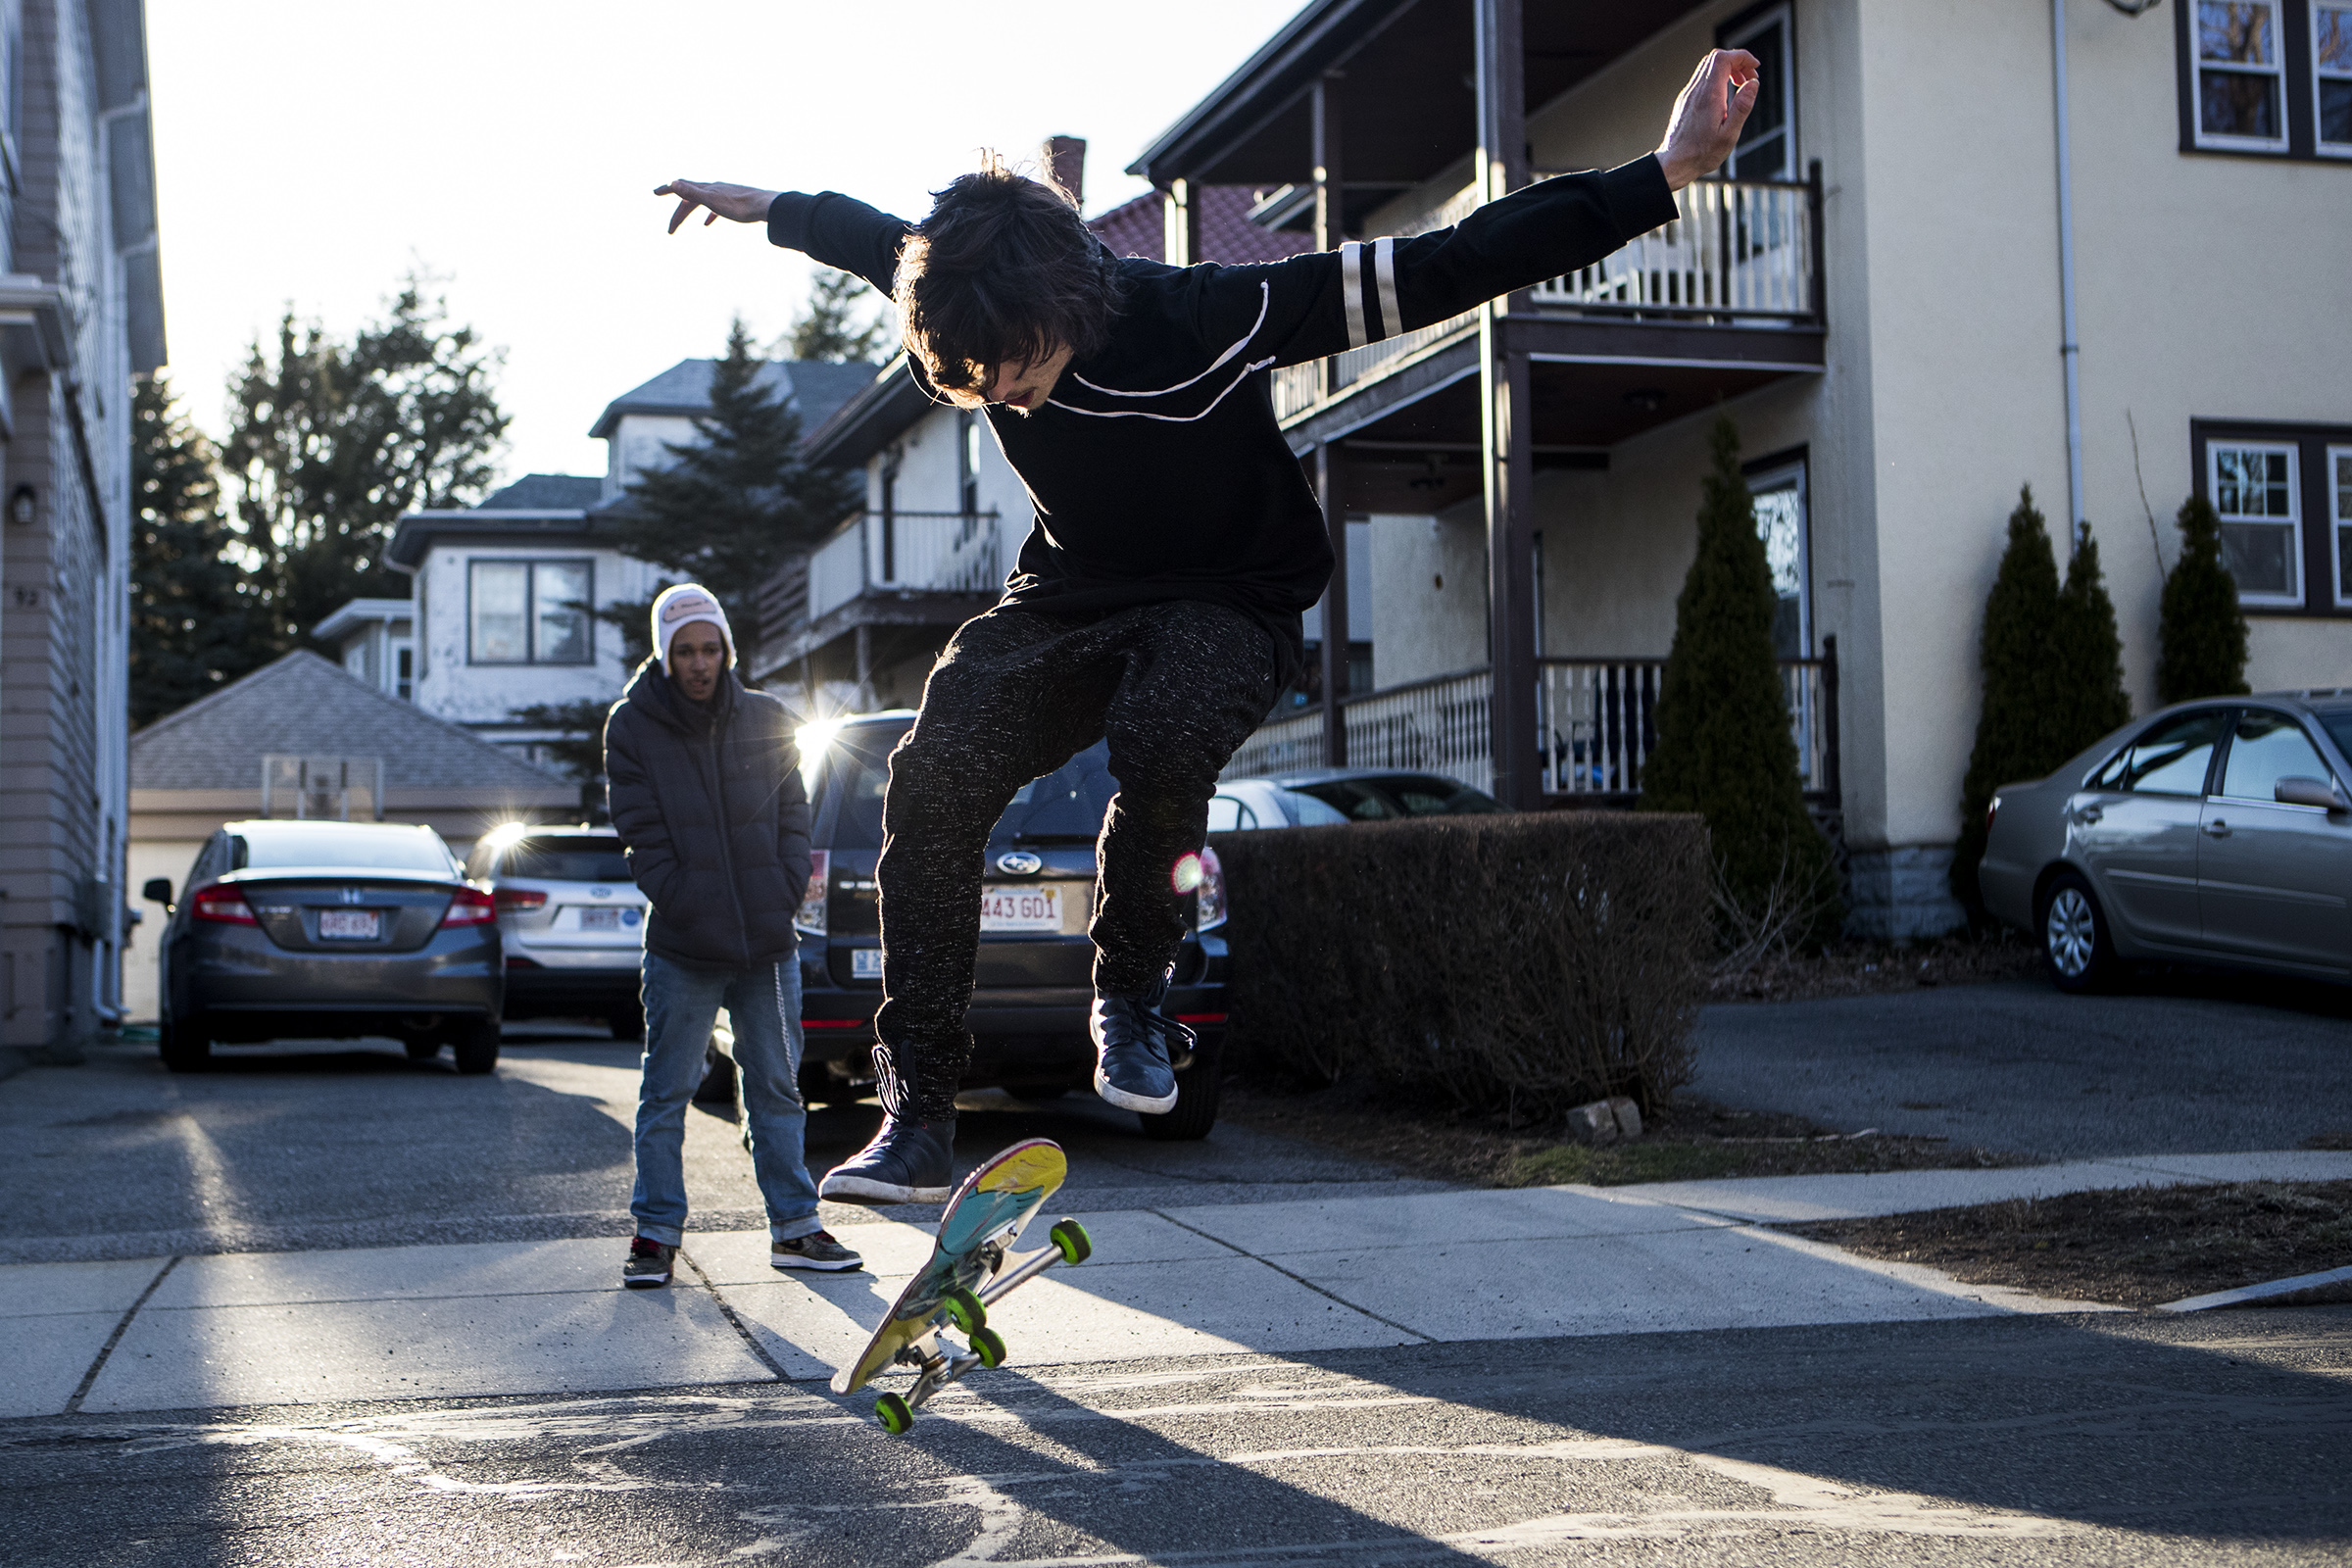 Kairi Thomas, left, watches while Dylan Ross, both of Belmont, skateboards along Oak Ave during a sunny afternoon in Belmont on April 1, 2019.